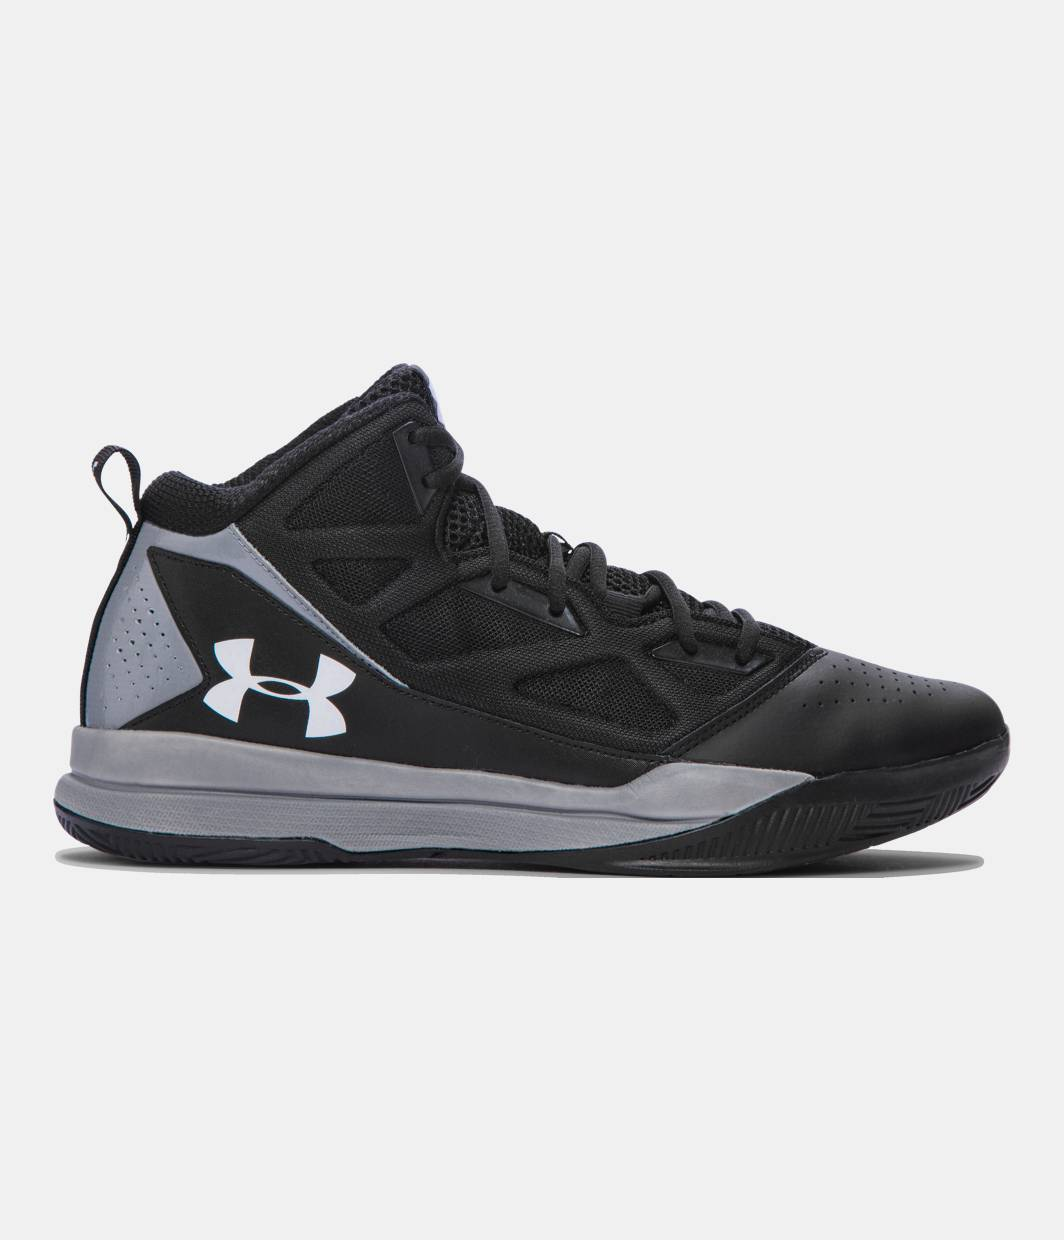 Mens Ua Jet Low Basketball Shoes Under Armour BJtPYuU42